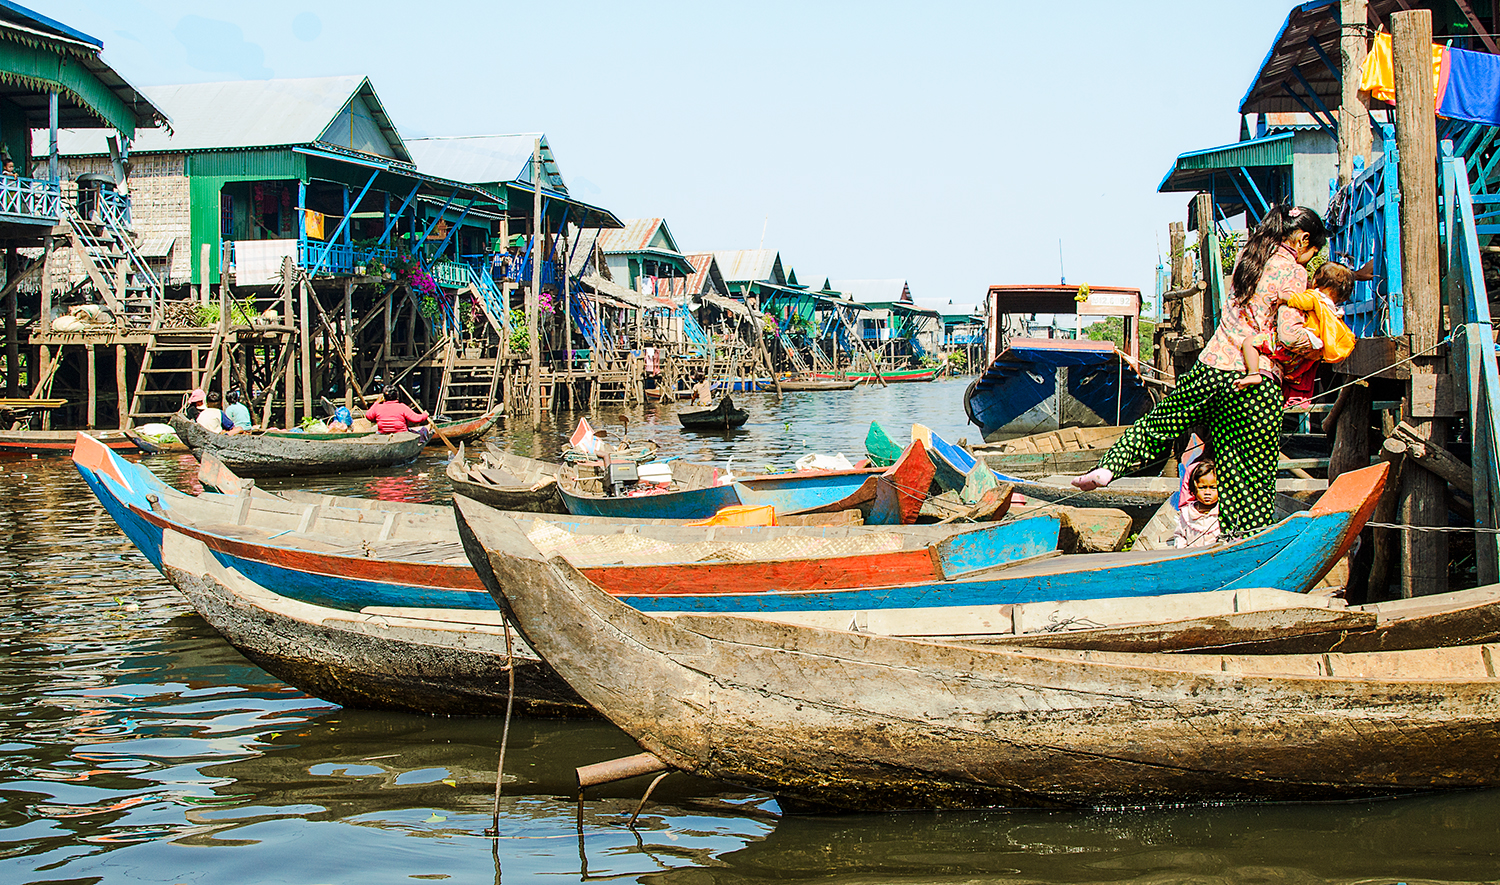 Village on stilts, Tonle Sap Lake, Cambodia